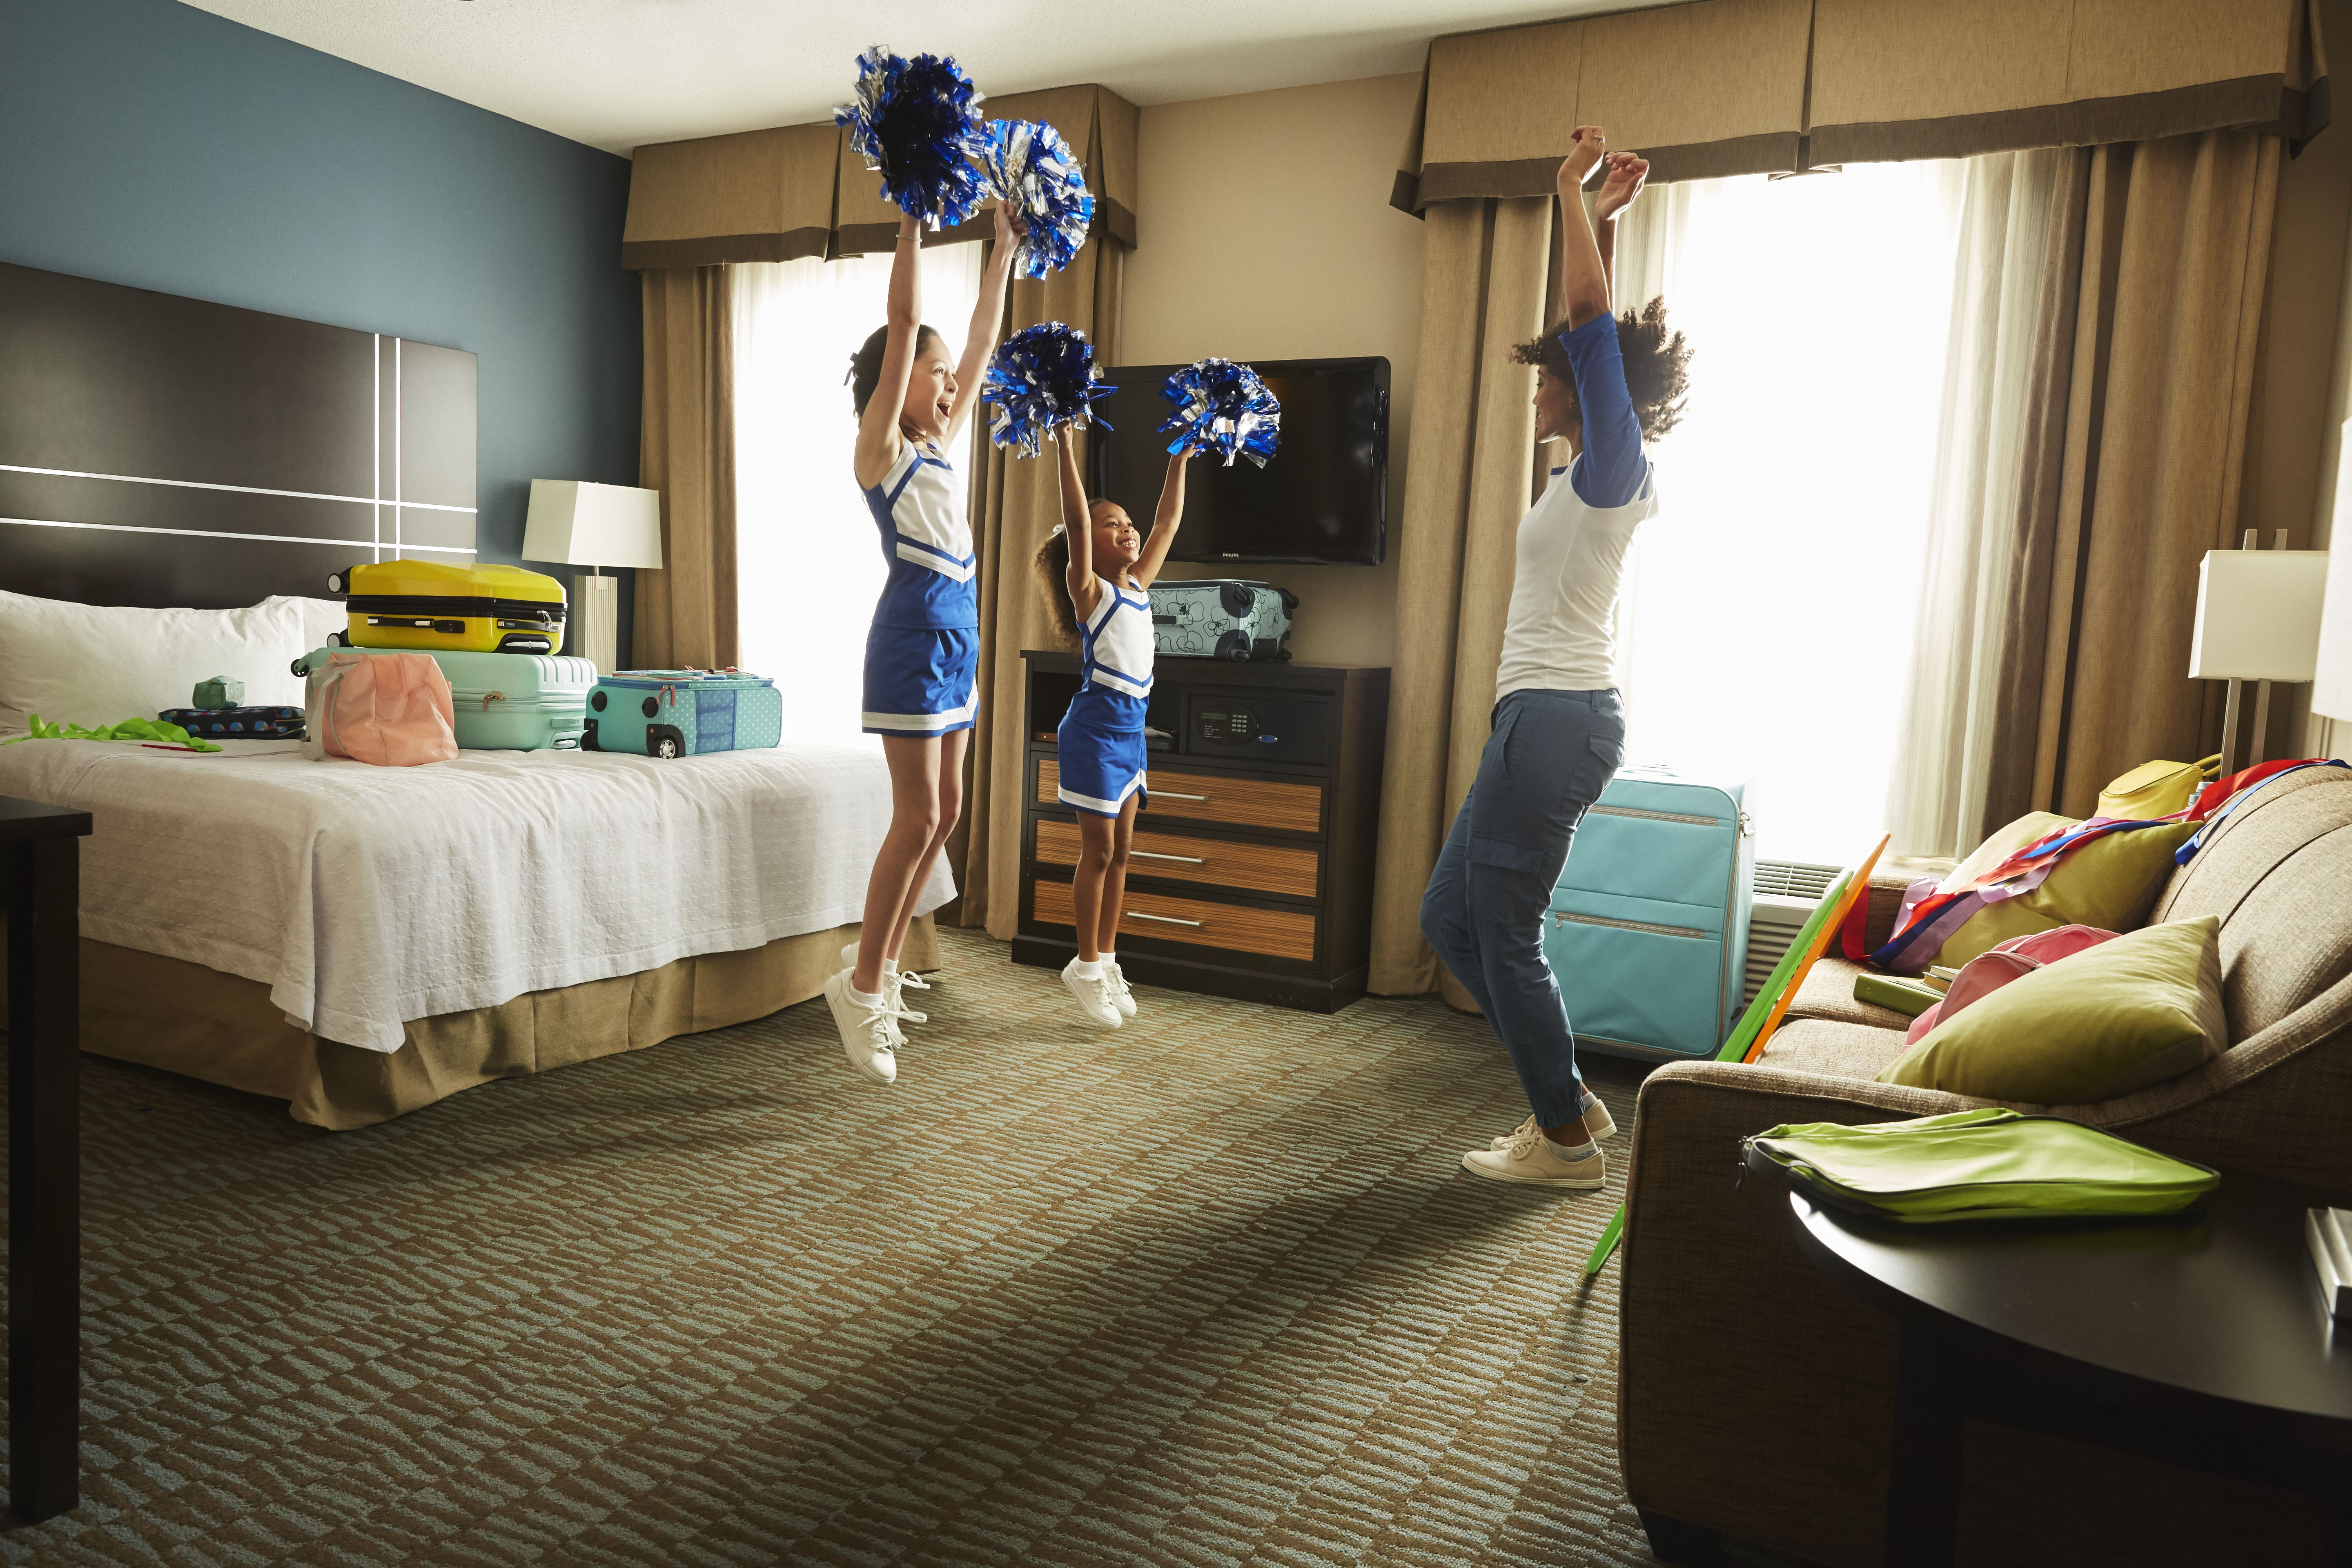 Traveling and spending a night in a hotel with teammates is an exciting part of the youth sports experience.(Photo: Business Wire)